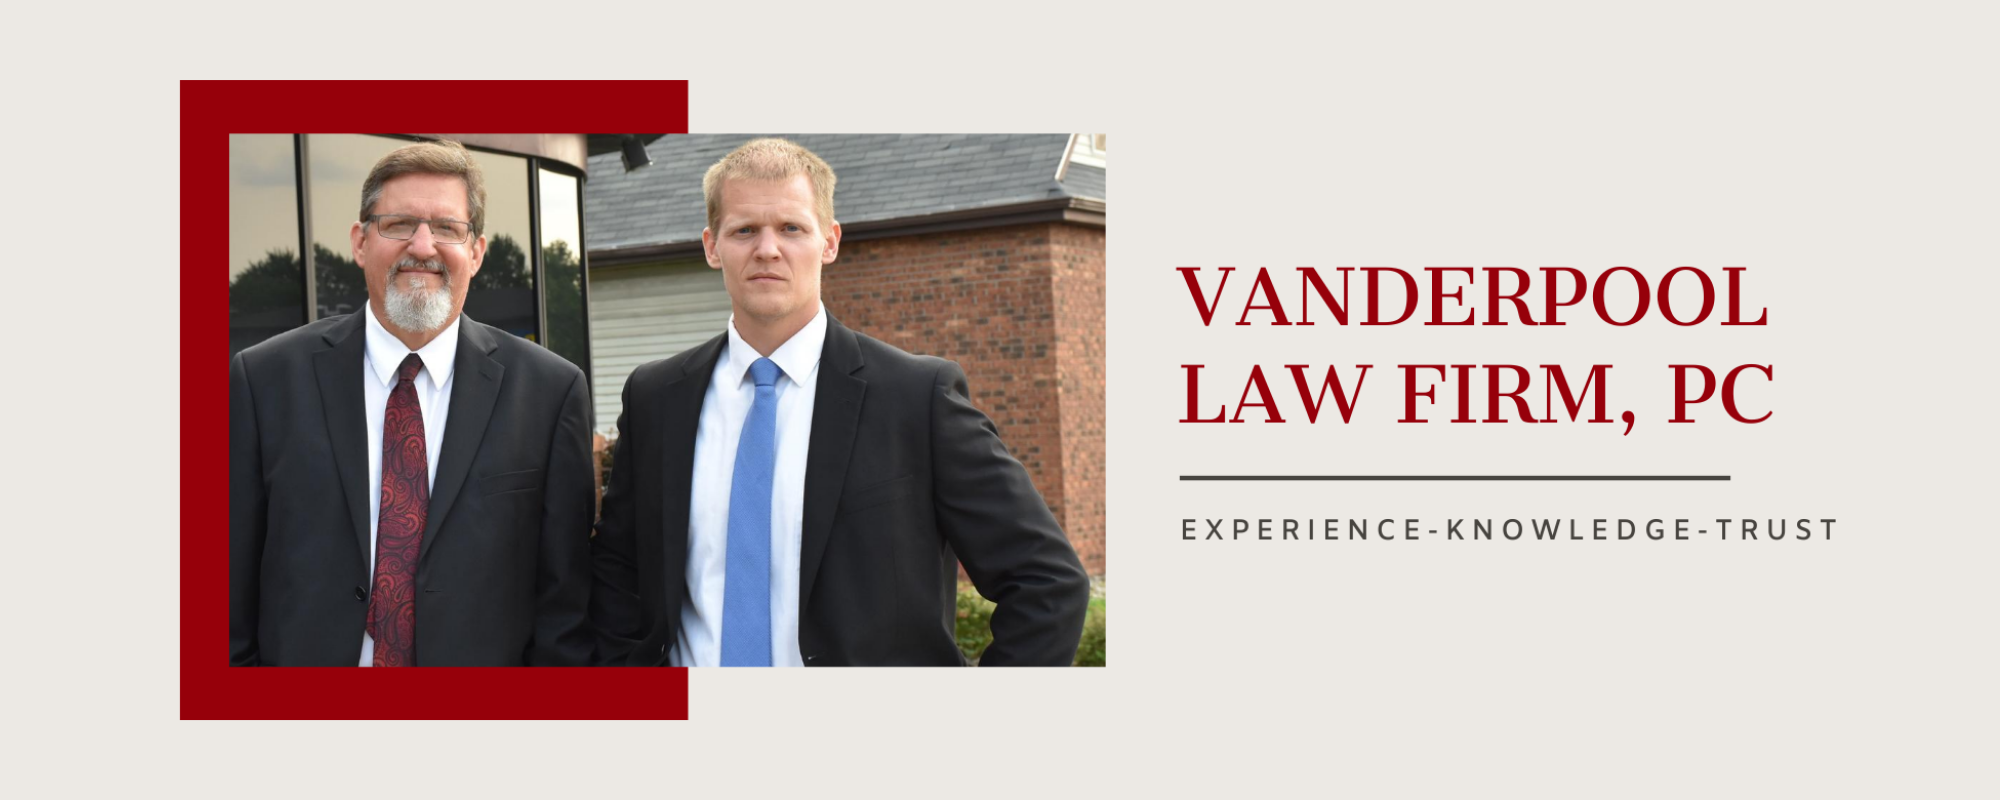 Indiana Personal Injury and Criminal Defense